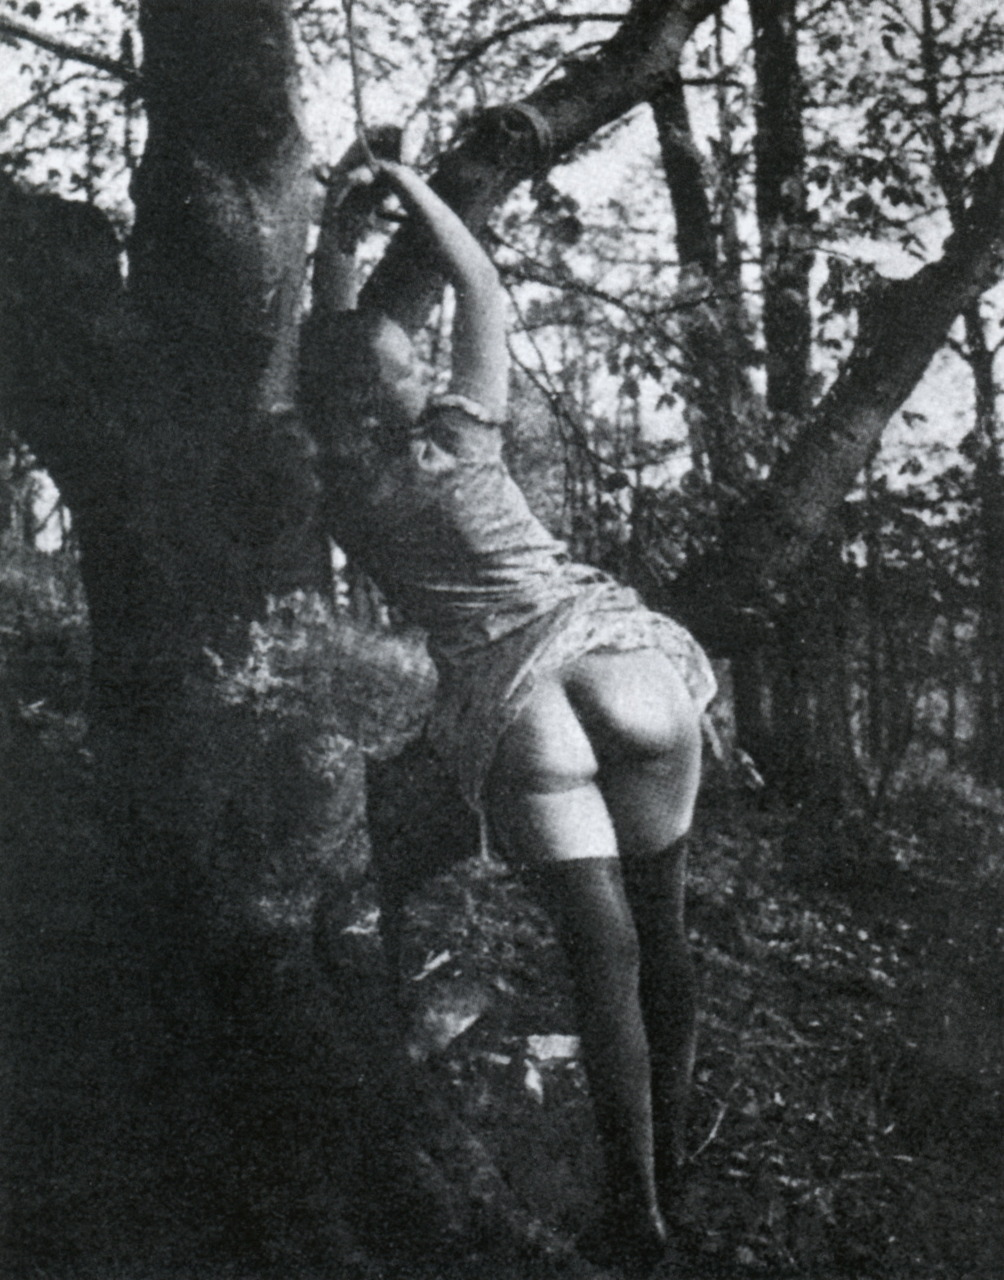 Ah, the spanking tree. Why have all our good, old-fashioned customs fallen by the wayside in this crazy modern world?